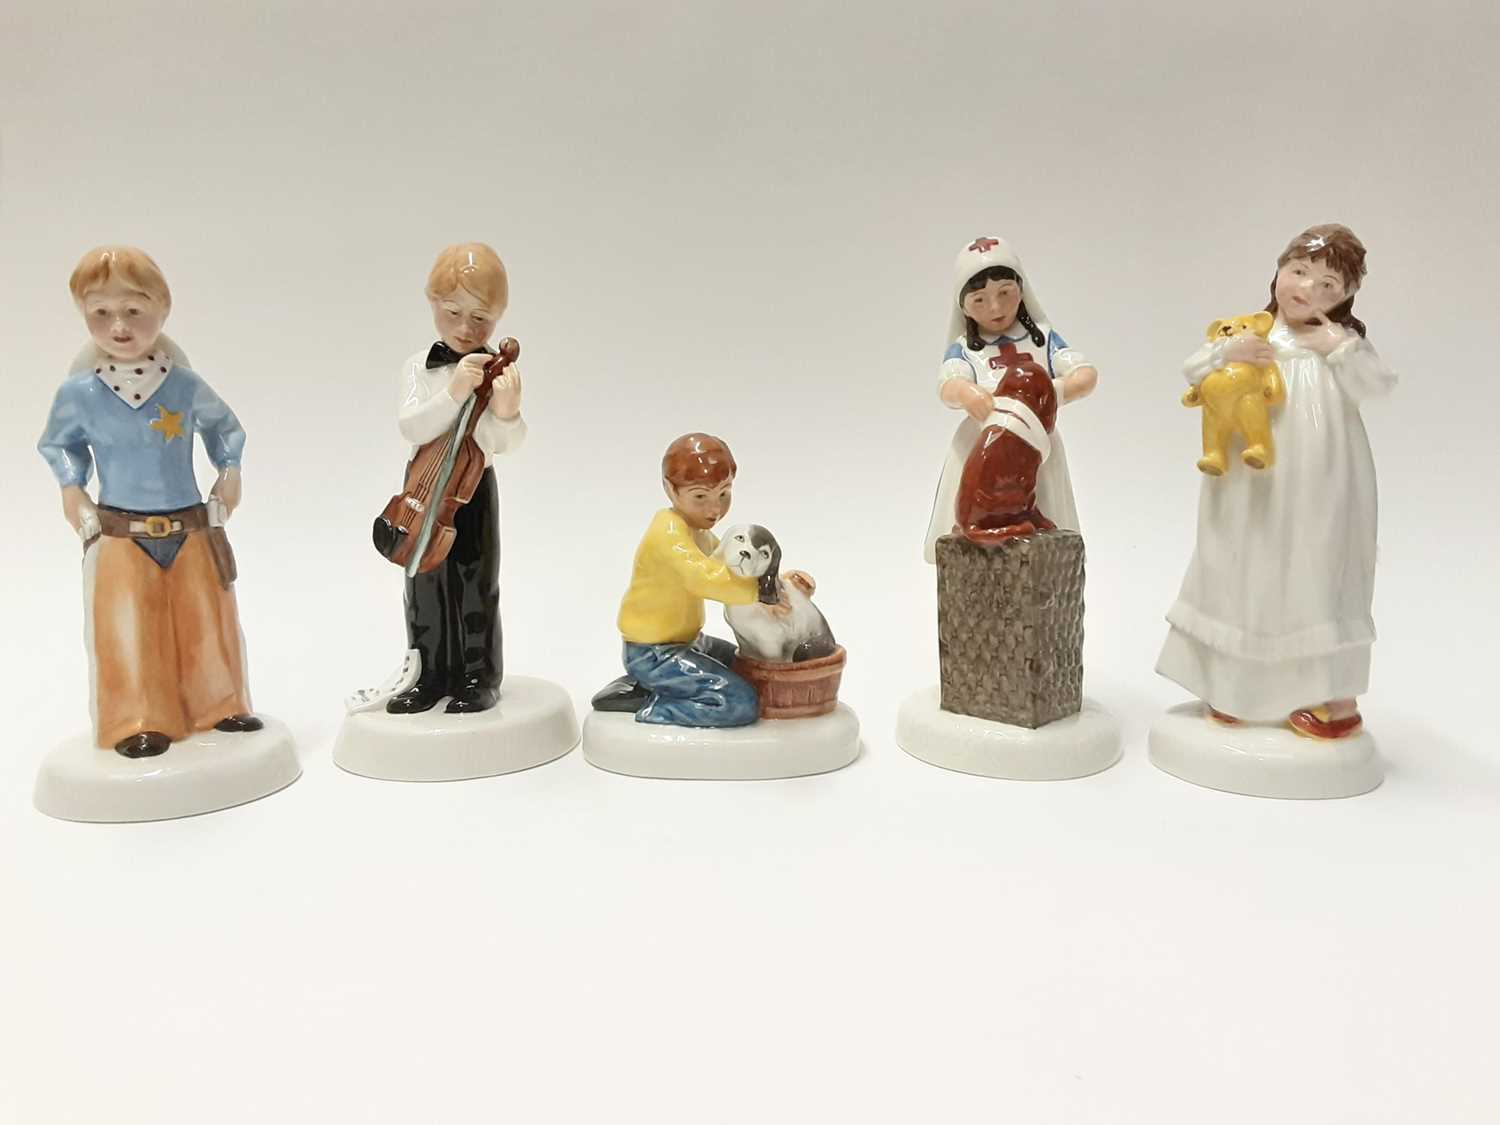 Lot 63 - Five Royal Doulton Childhood Days figures - Please Keep Still HN2967, I'm Nearly Ready HN2976, Stick 'Em Up HN2981, And So To Bed HN2966 and It Won't Hurt HN2963